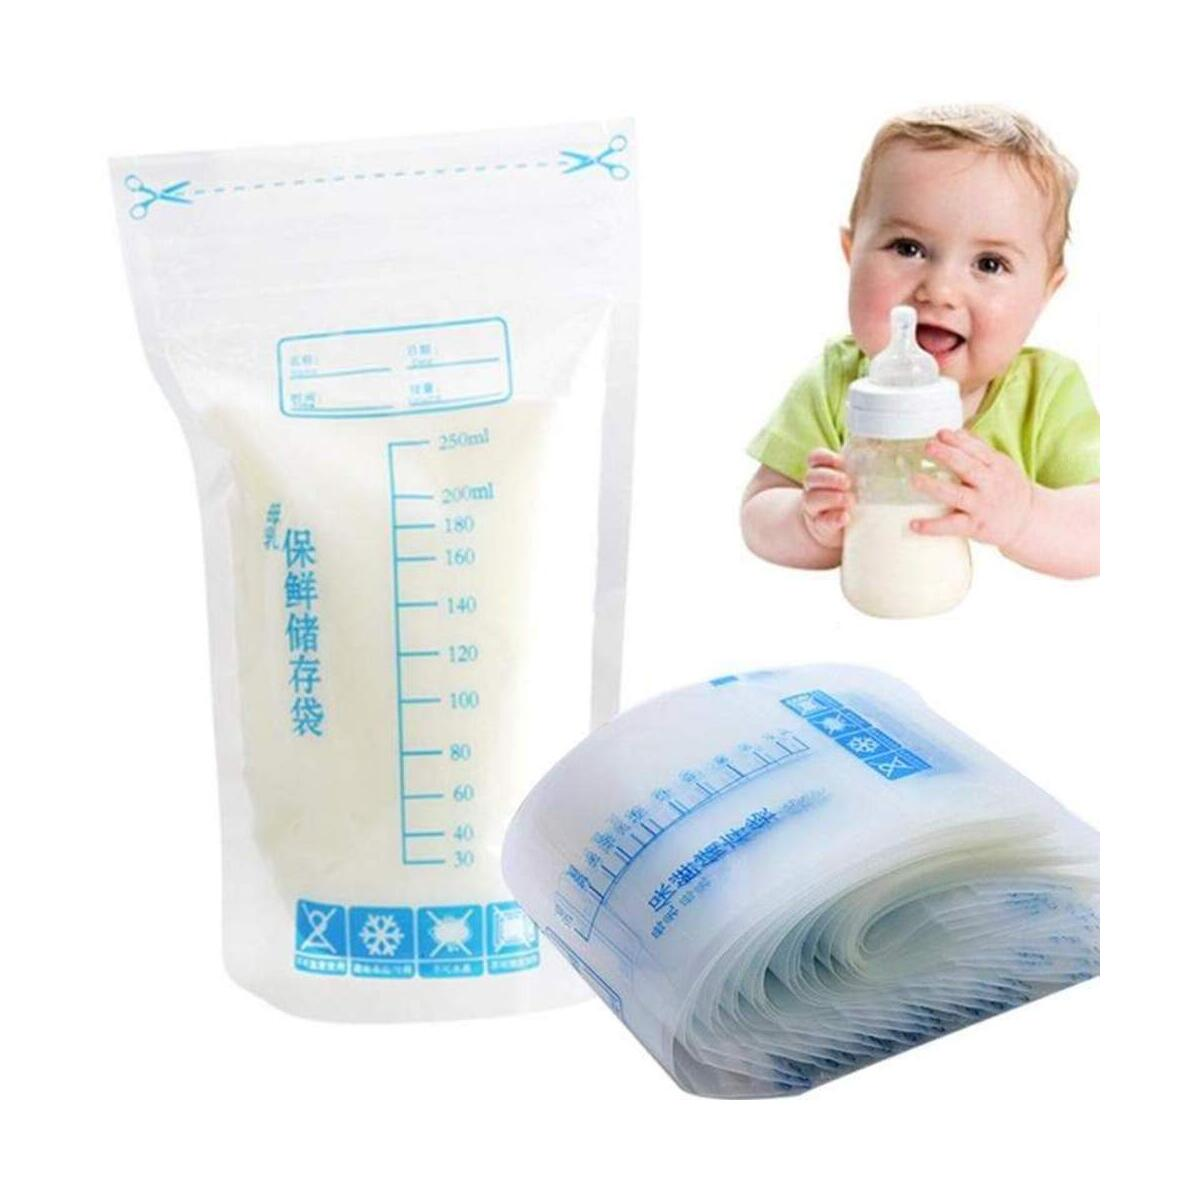 Breastmilk Storage Bags Breastfeeding Freezer Leak Proof Storage Container Bags For Breast Milk Comes Pre Sterilized & Bpa Free With Accurate Measurements